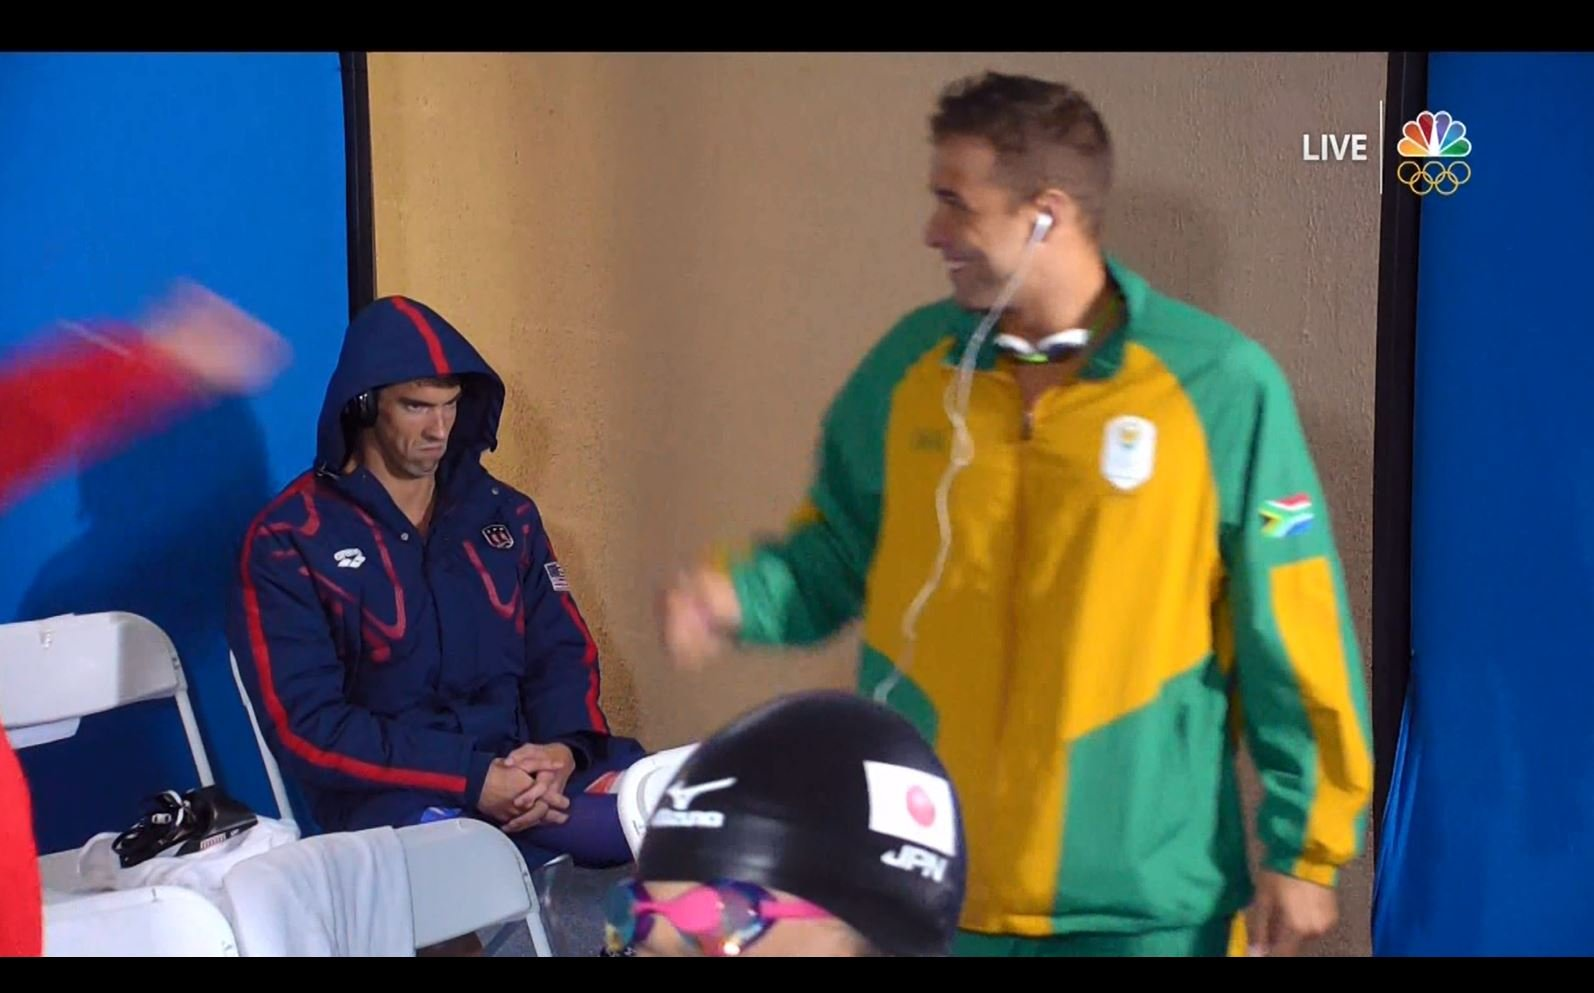 Michael Phelps staring down competition